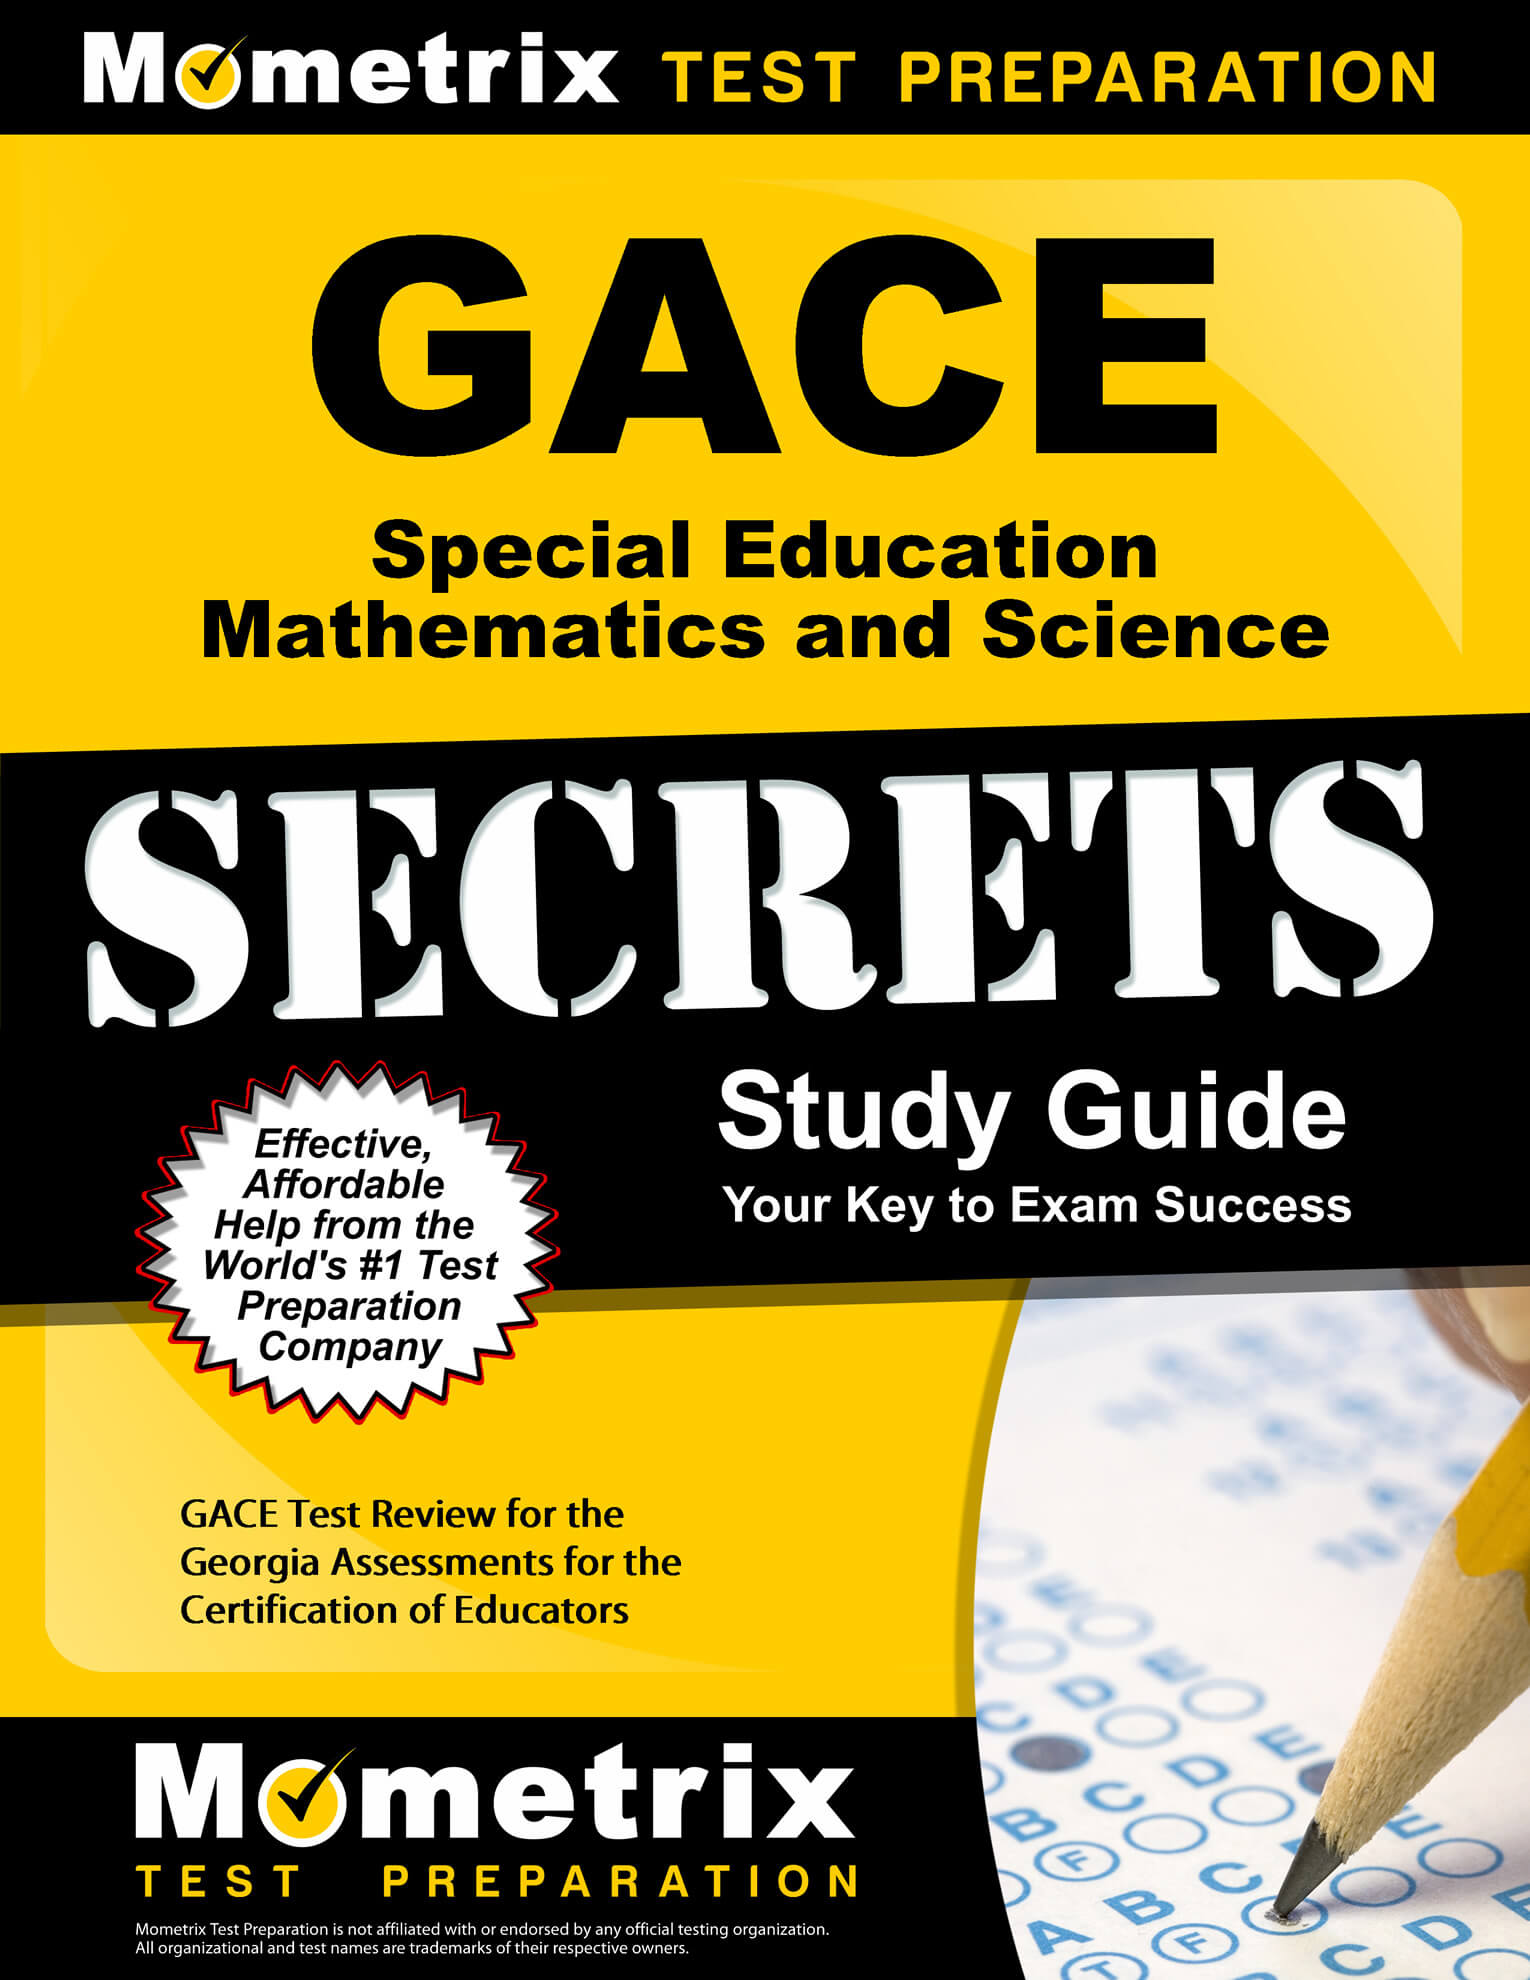 GACE Special Education Mathematics and Science Study Guide